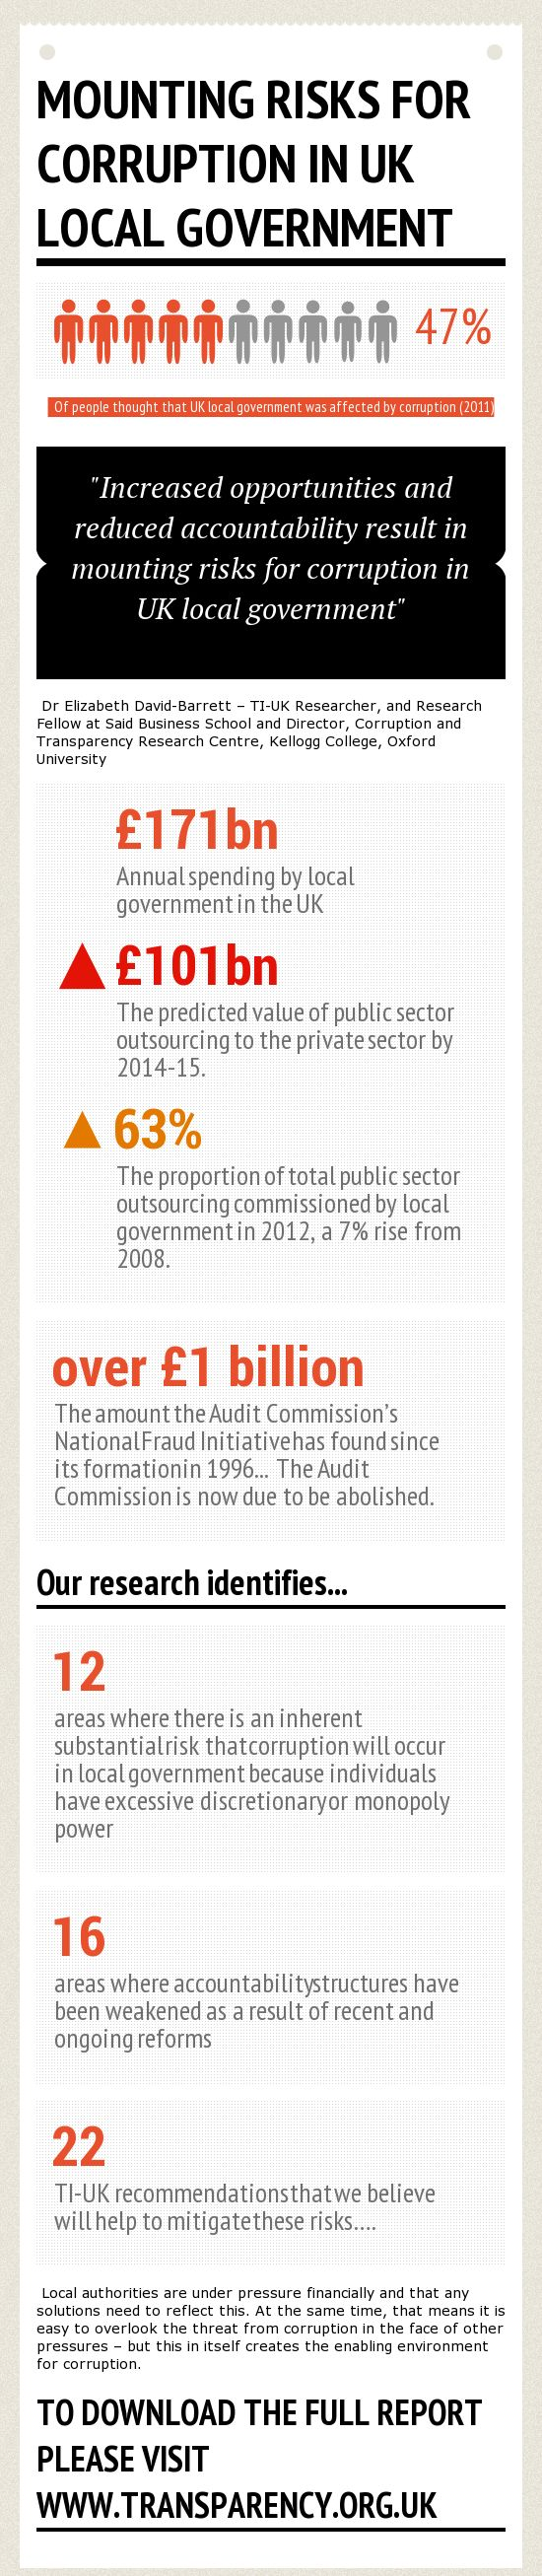 On 9th October 2013 TI-UK published a new report 'Corruption in Local Government: The Mounting Risks'. What is the impact of recent legislative changes on the level of corruption risk in local government?